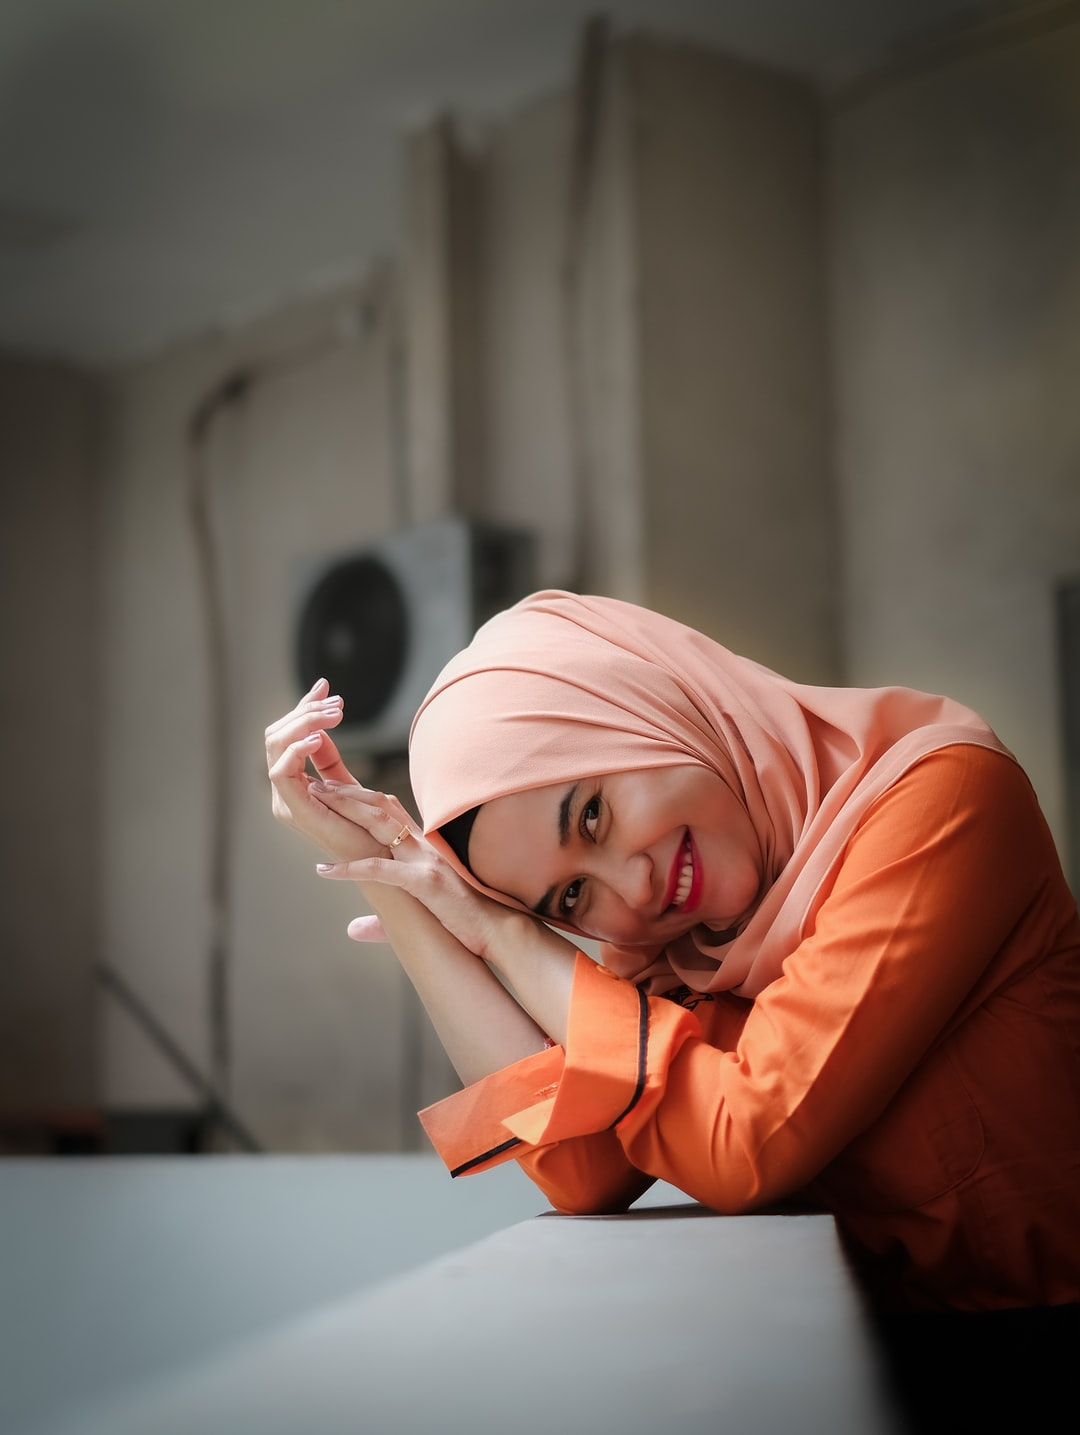 4 TOP MUSLIM INFLUENCERS IN THE BEAUTY INDUSTRY IN 2020